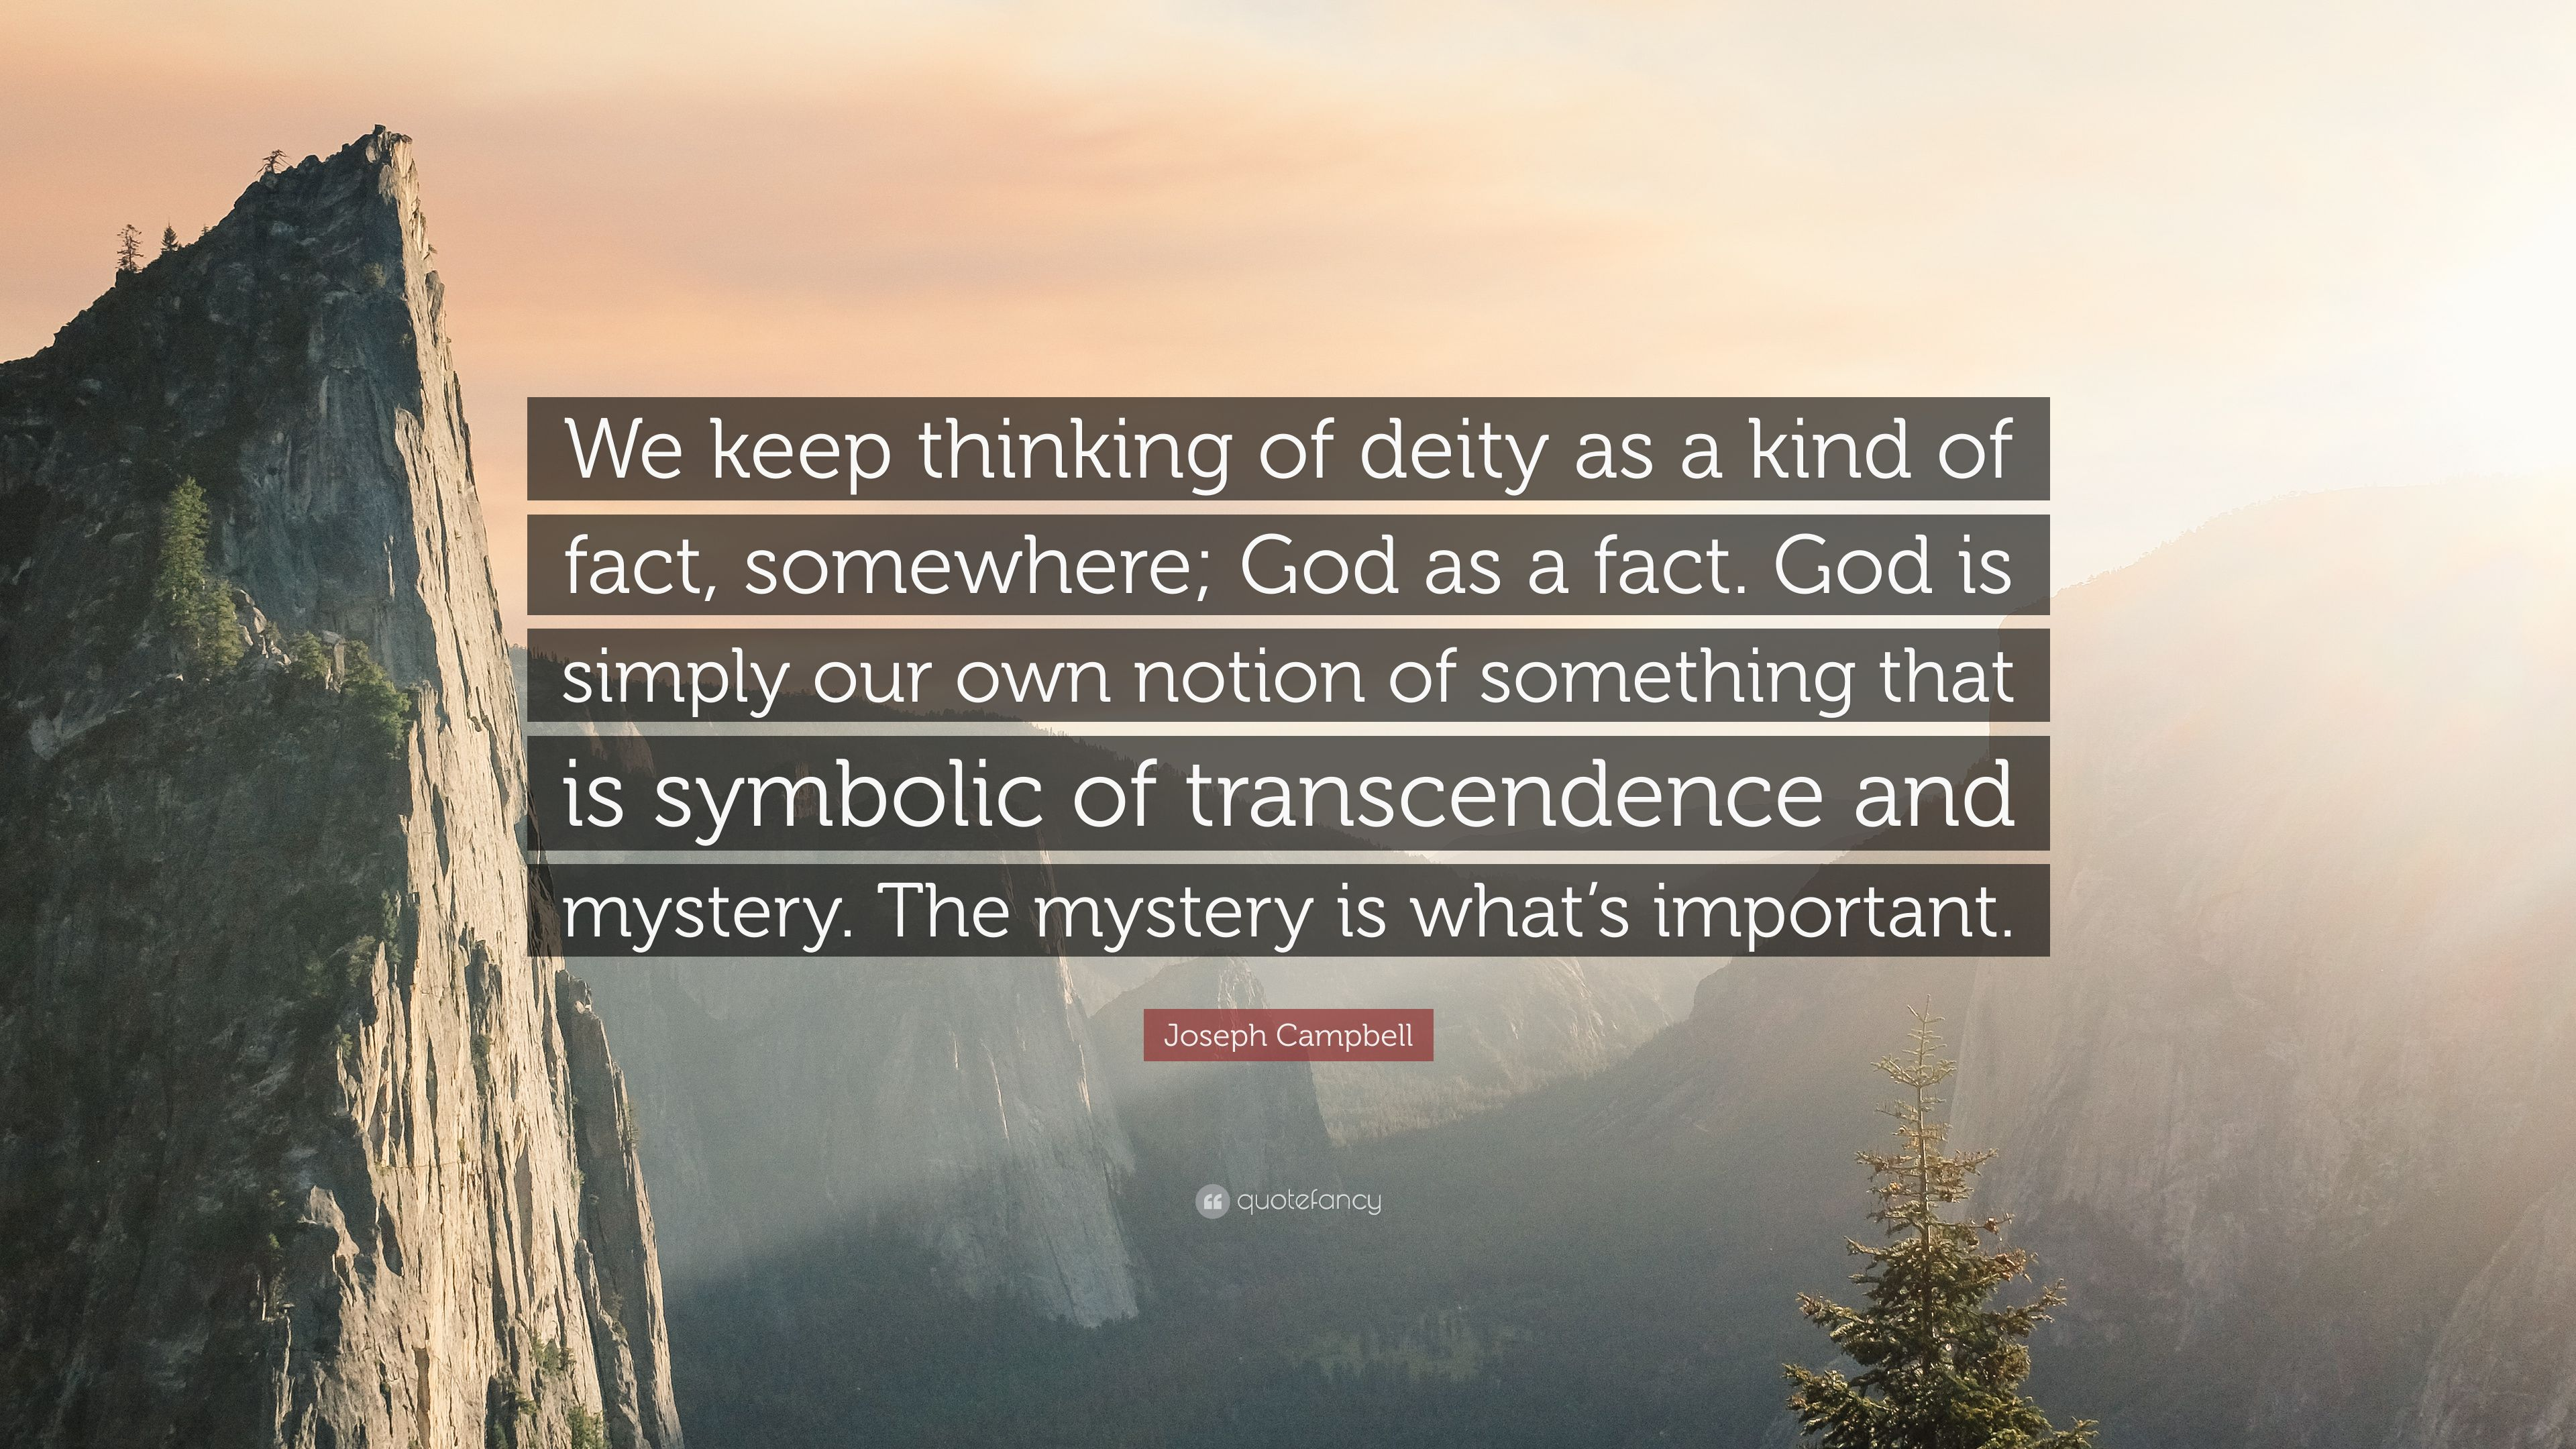 Joseph campbell quote we keep thinking of deity as a kind of joseph campbell quote we keep thinking of deity as a kind of fact biocorpaavc Choice Image